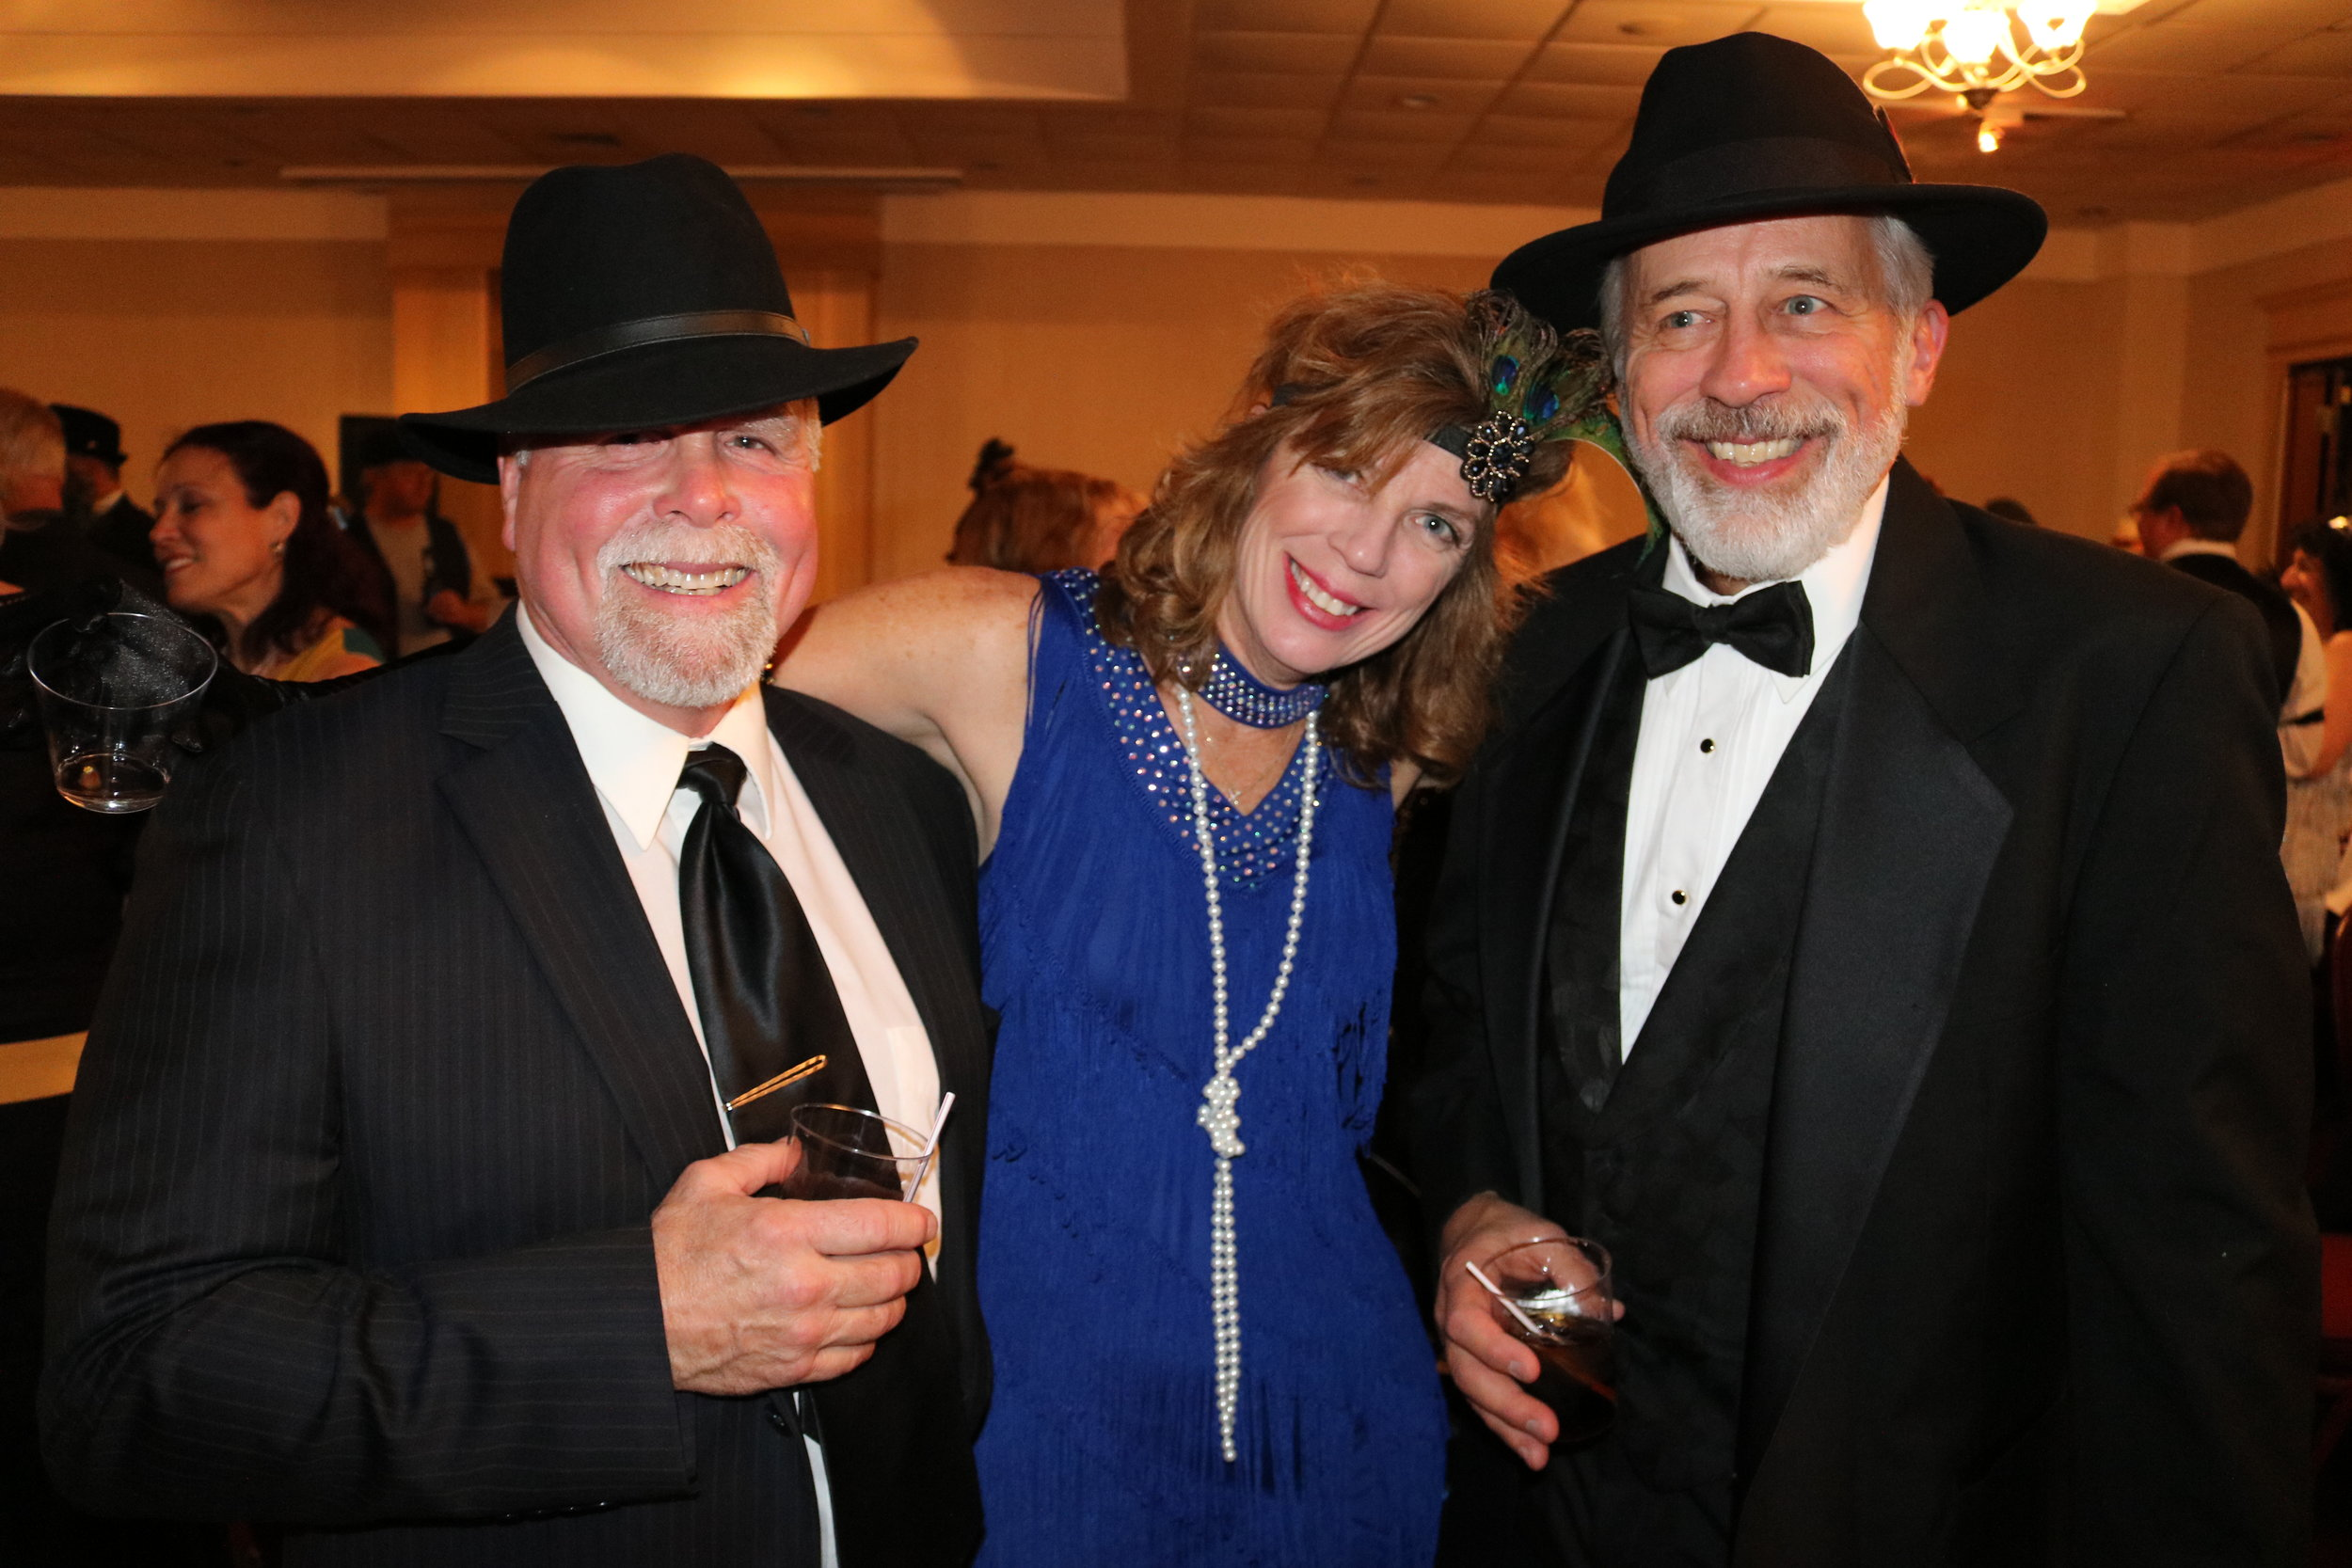 All kinds of trouble showed up for this party. Rabble rousers James Altherr, Wanda Weiman, and Mike Petsch are caught in the act.